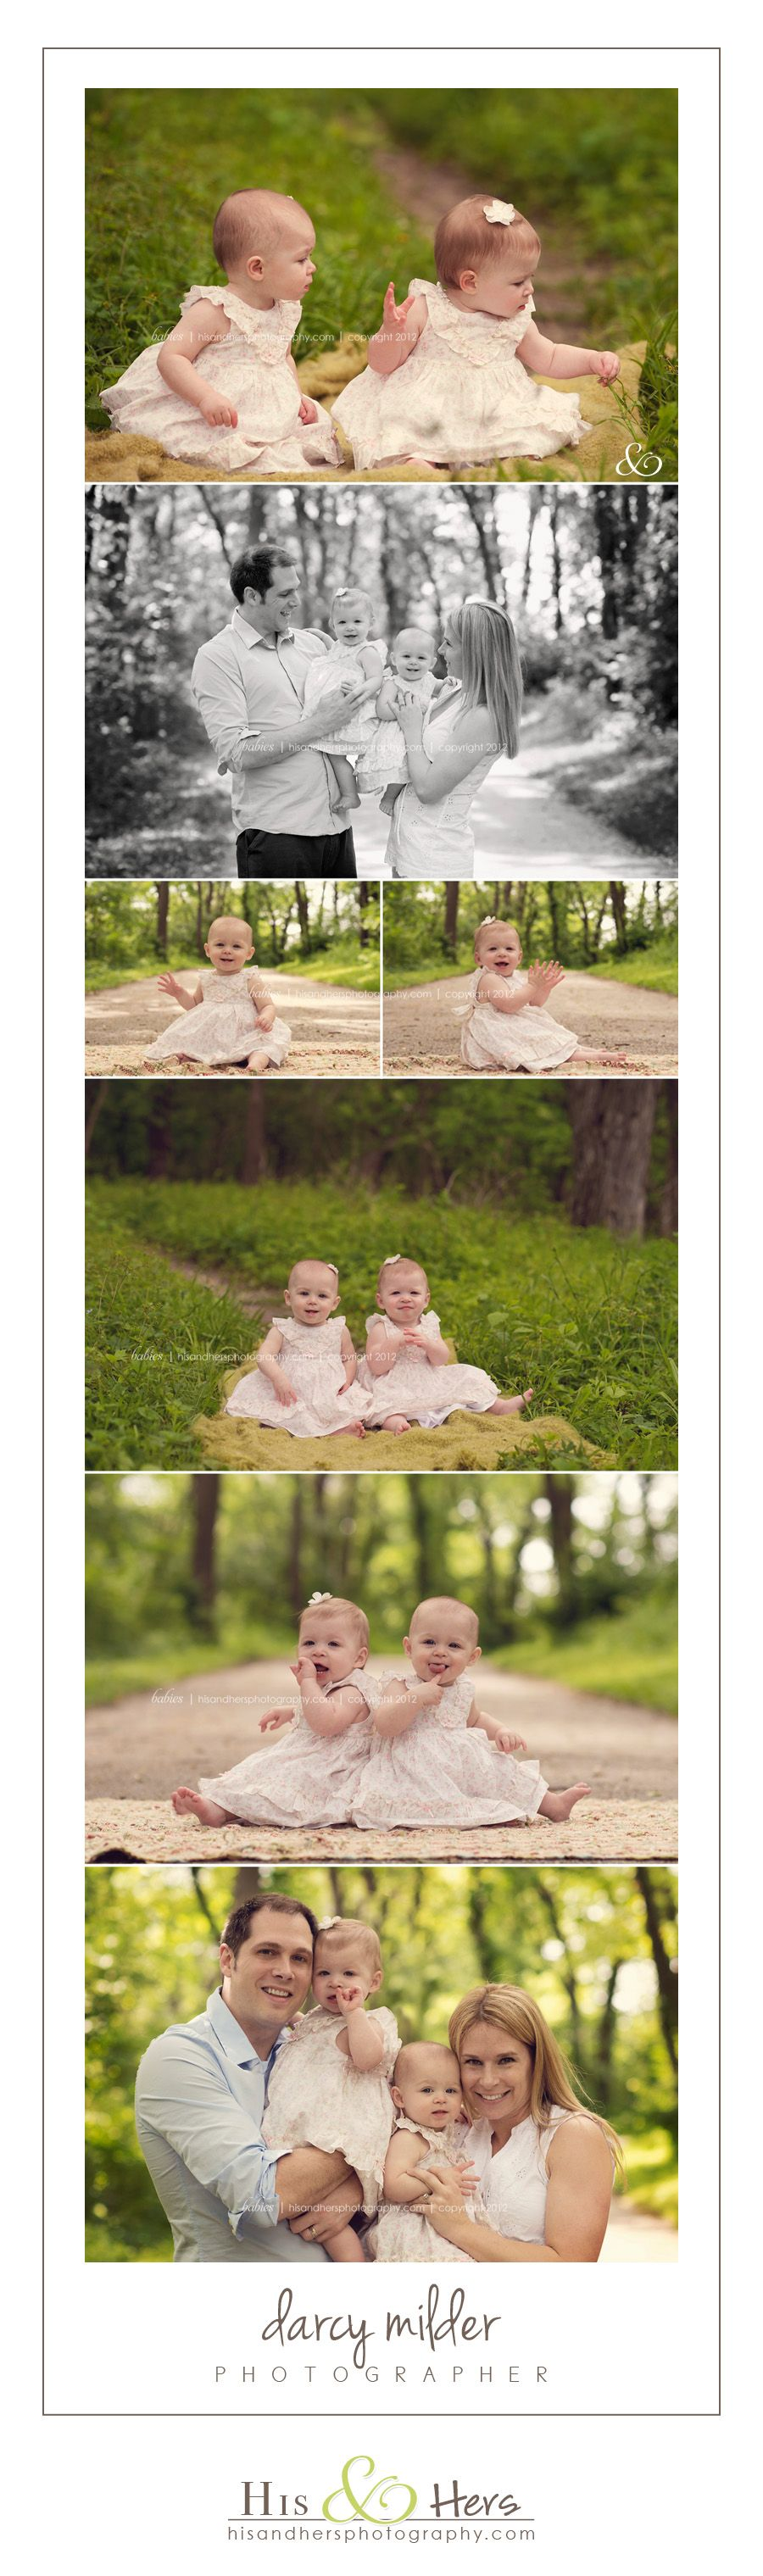 twins 1 year old portraits iowa baby family child photographer   Darcy Milder   His & Hers